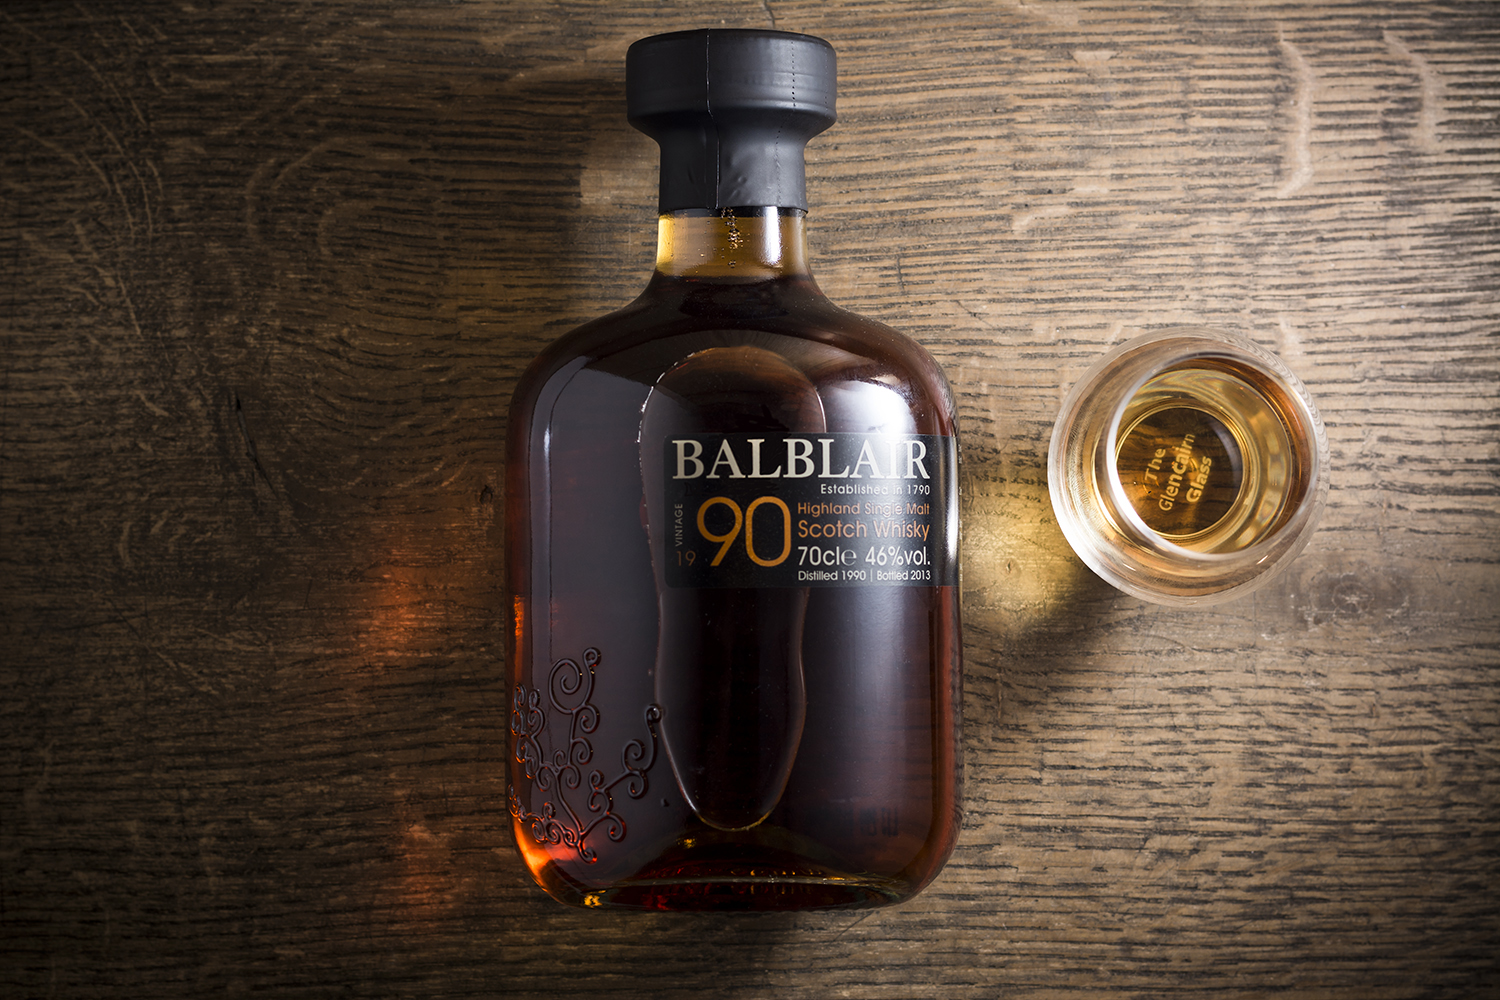 <b>Balblair Whisky</b><br>An award-winning whisky distillery located on the Dornoch coast, founded in 1790.